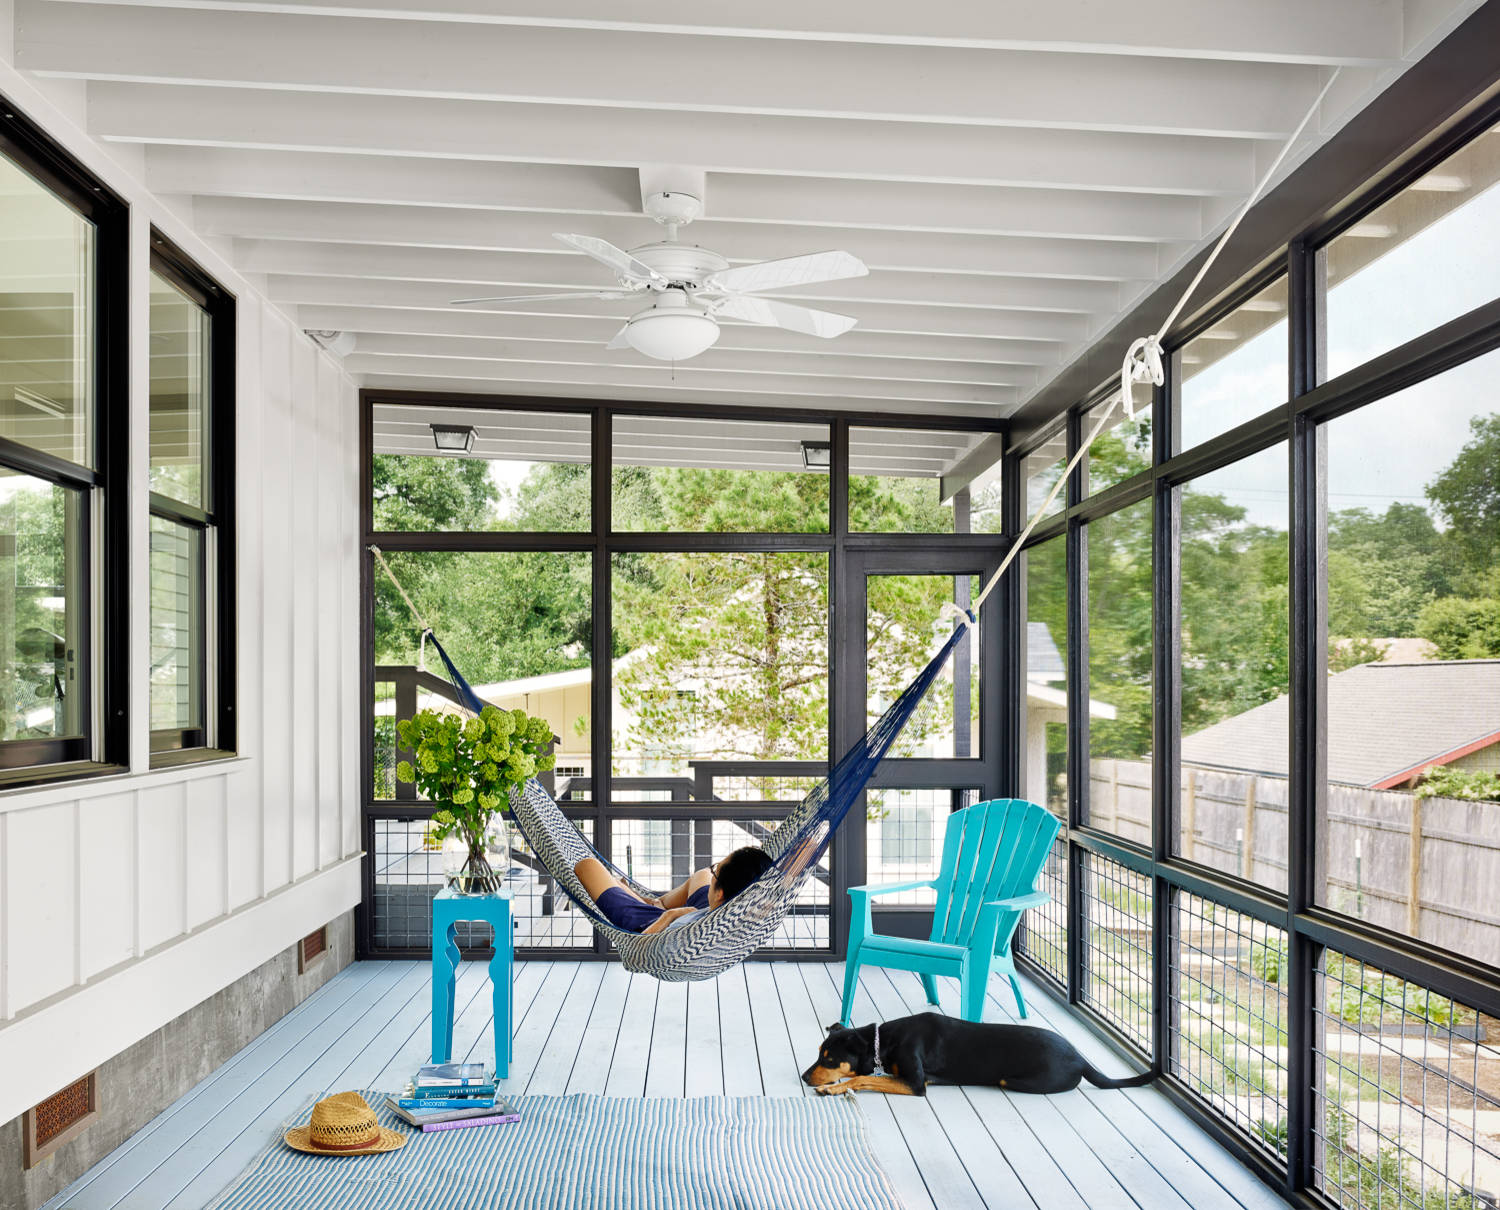 12 tips to rock your screened porch for Houses with screened in porches